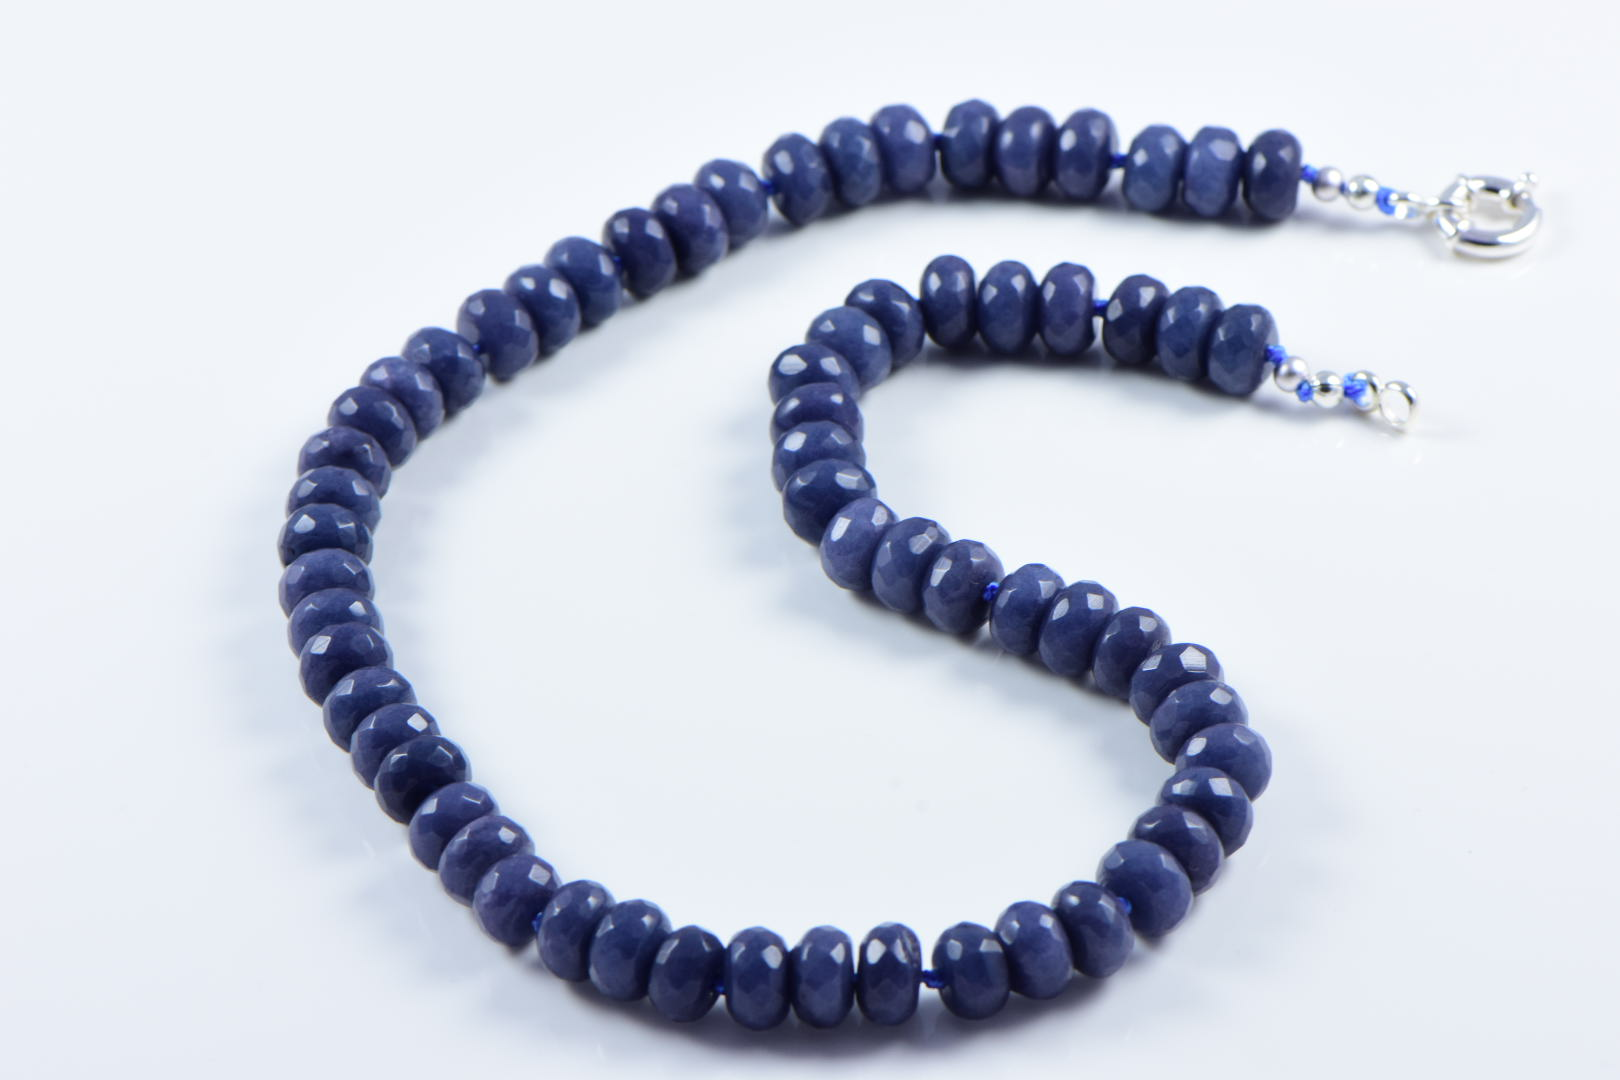 AqBeadsUk Classic Semi-Precious 10x5mm Gemstone Dark Grey Jade Faceted Round Beads 19 inch Luxury Hand-Knotted Women's Necklace